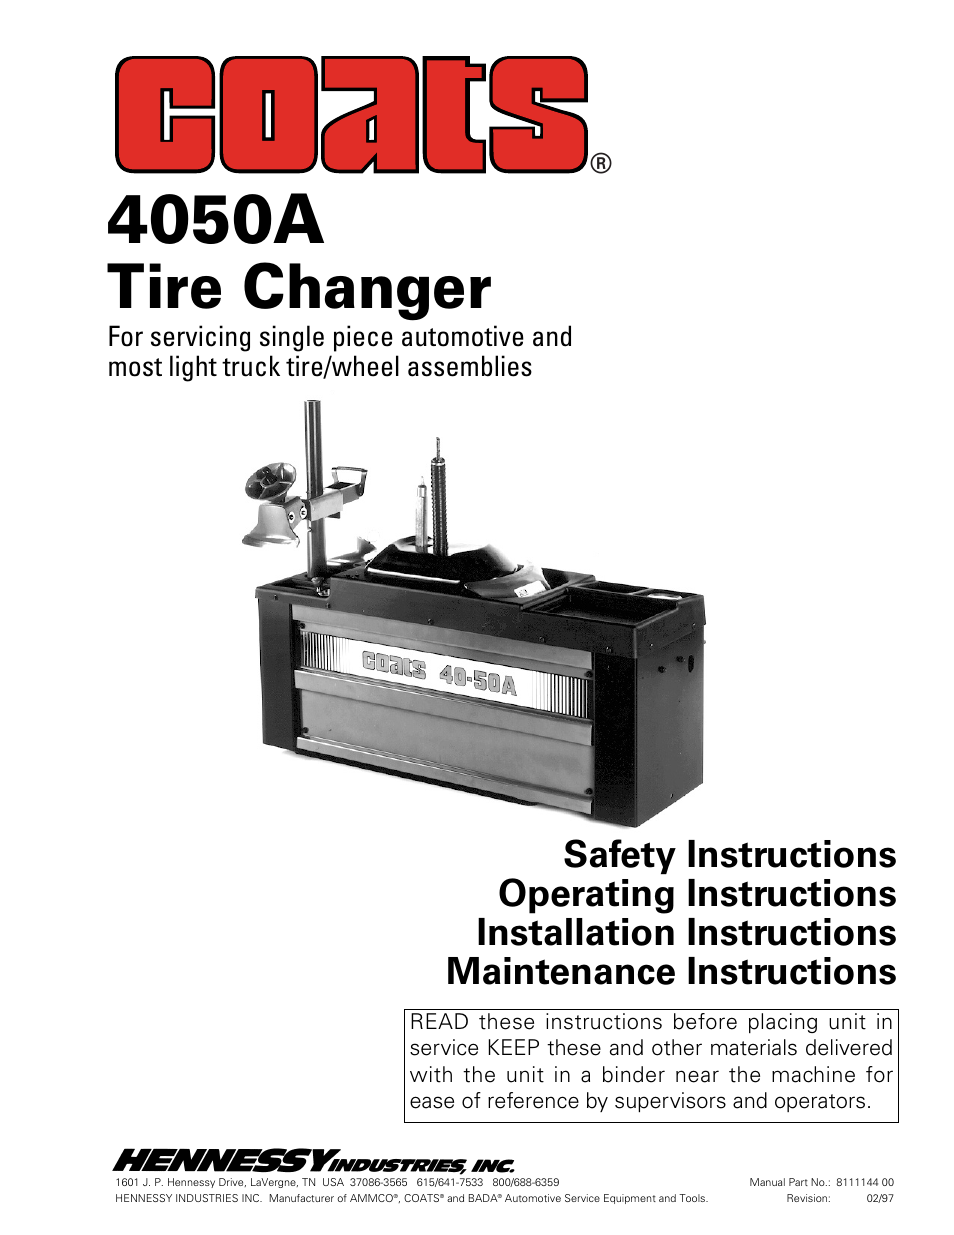 coats 4050a tire changer user manual 16 pages rh manualsdir com Ammco Tire Changers Ammco Model 4000